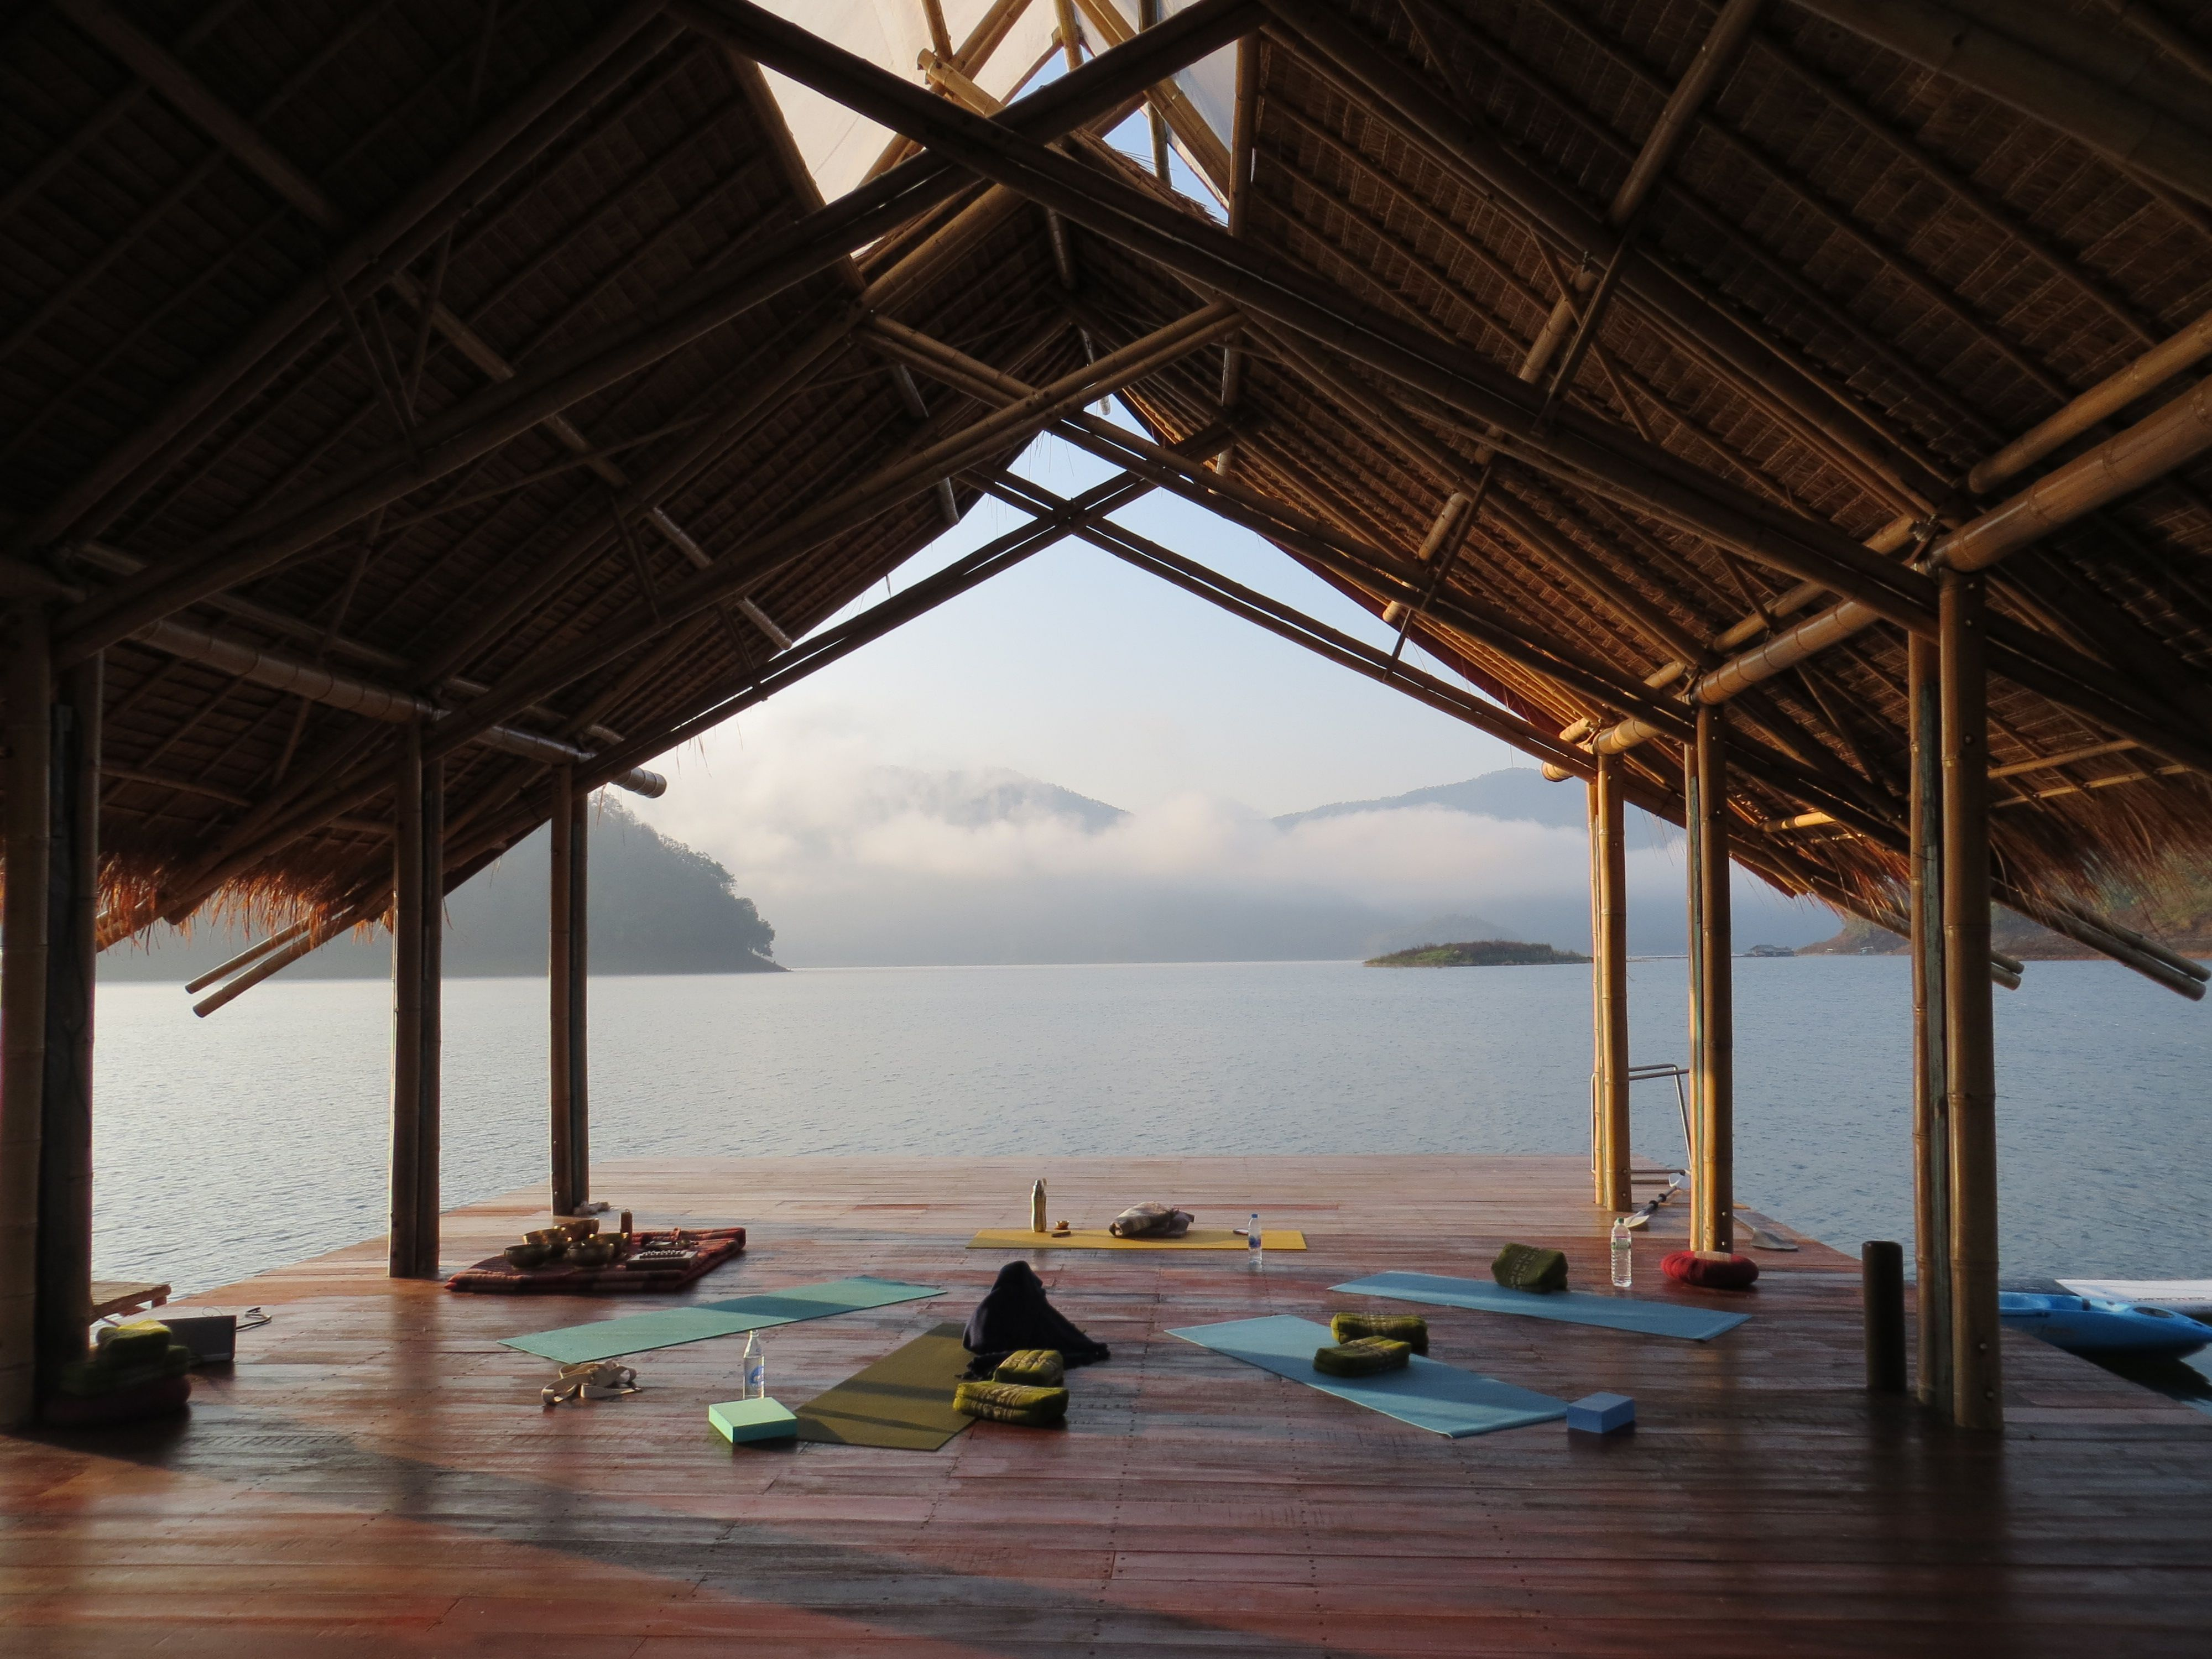 Yoga Retreat At Om Waters On A Lake An Hour From Chiang Mai Thailand It Was Incredible To Wake Up To This Eve Yoga Retreat Thailand Travel Relaxing Holidays